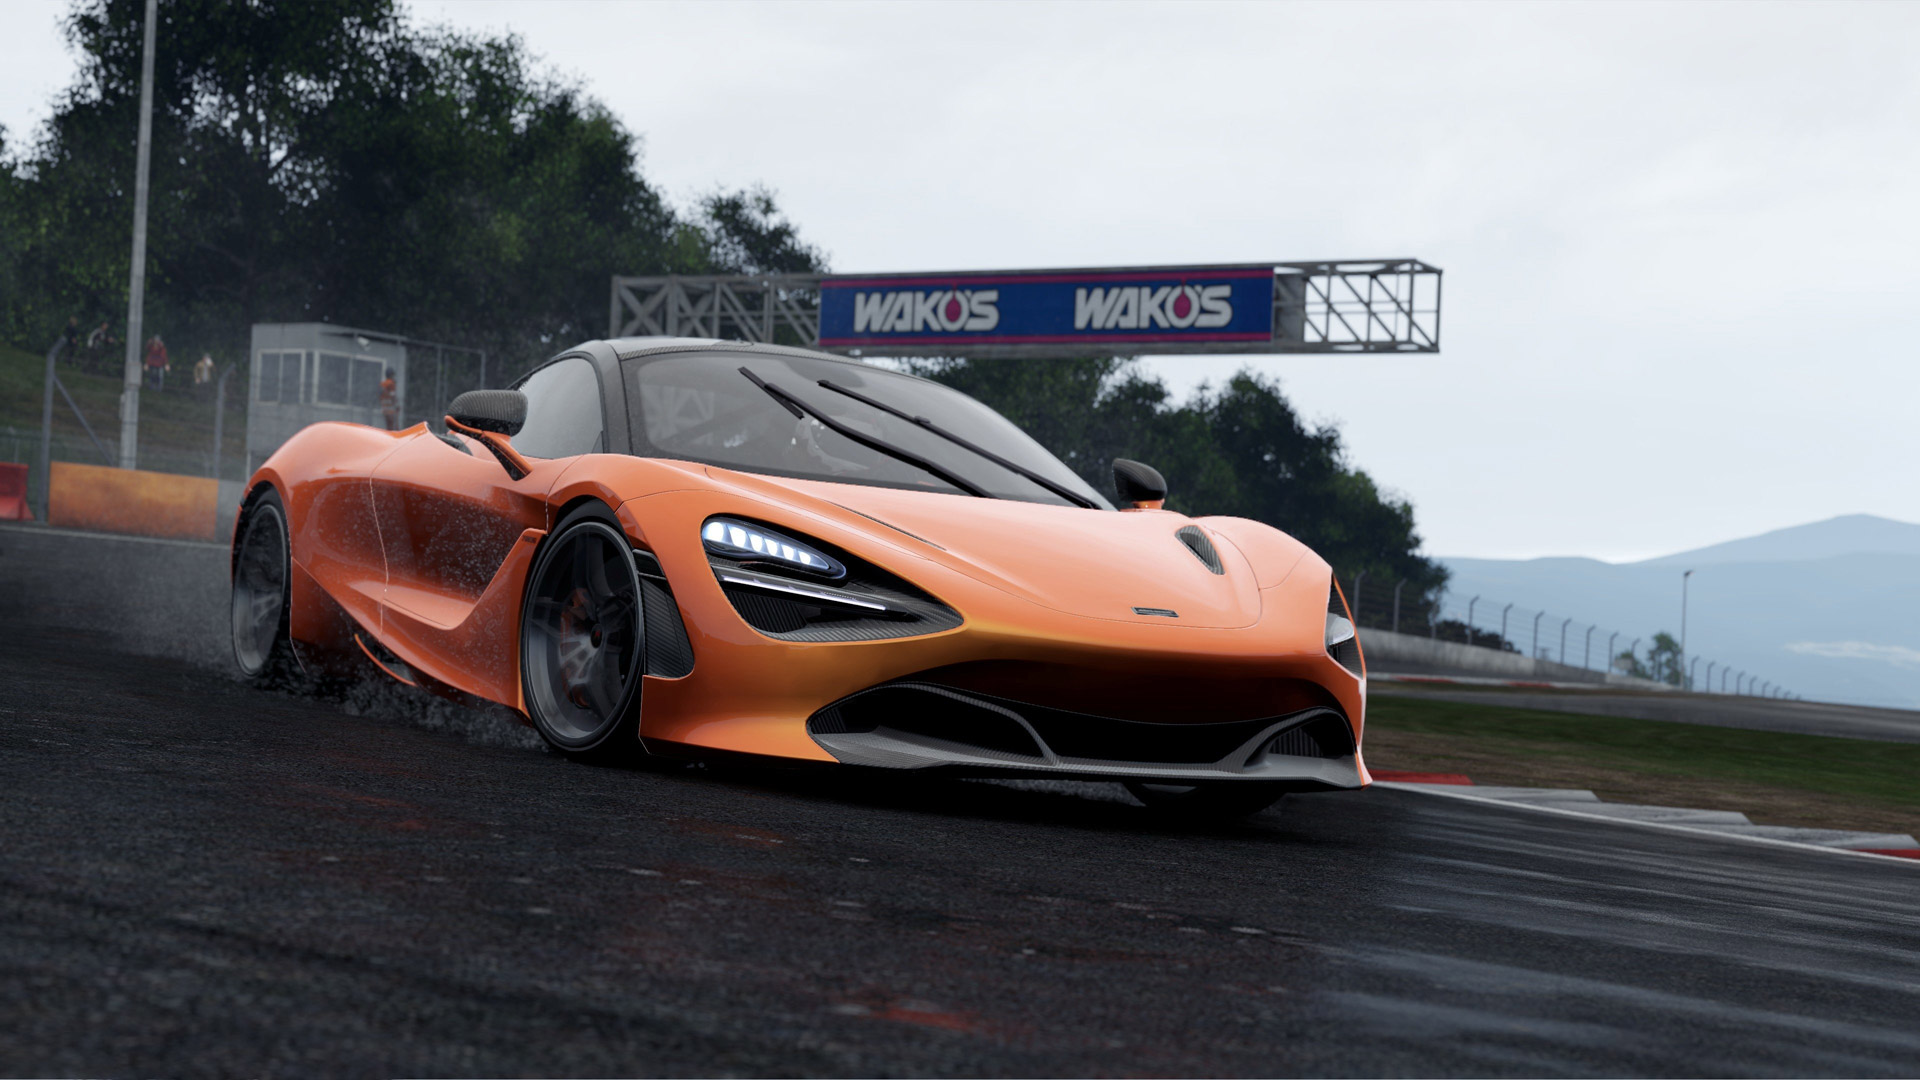 Free Project Cars 2 Wallpaper in 1920x1080